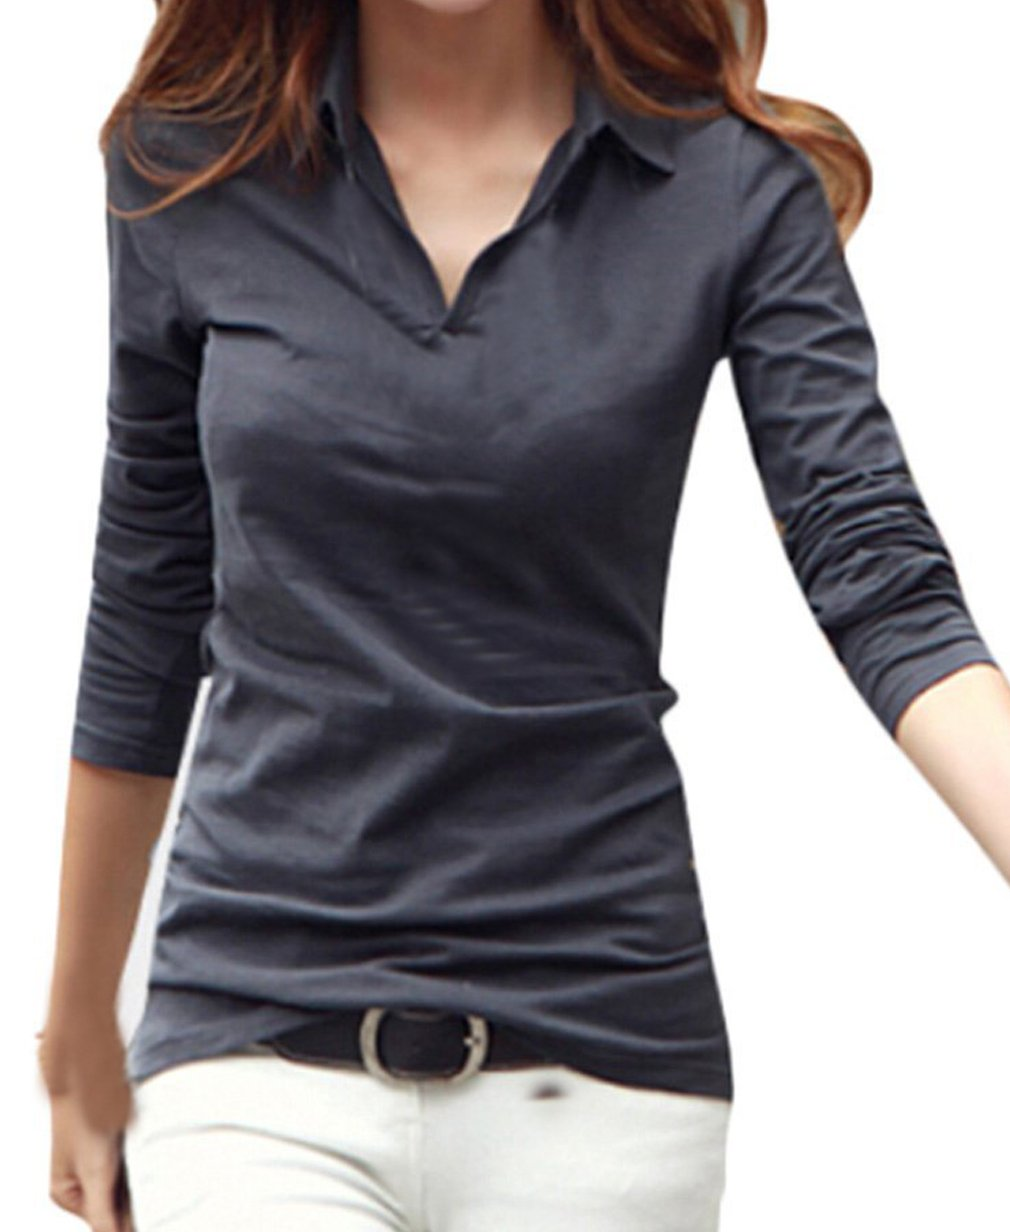 Smartprix Womens Long Sleeve Polo Shirts Cotton V Neck Solid Color Tops Tshirt X-Large Grey